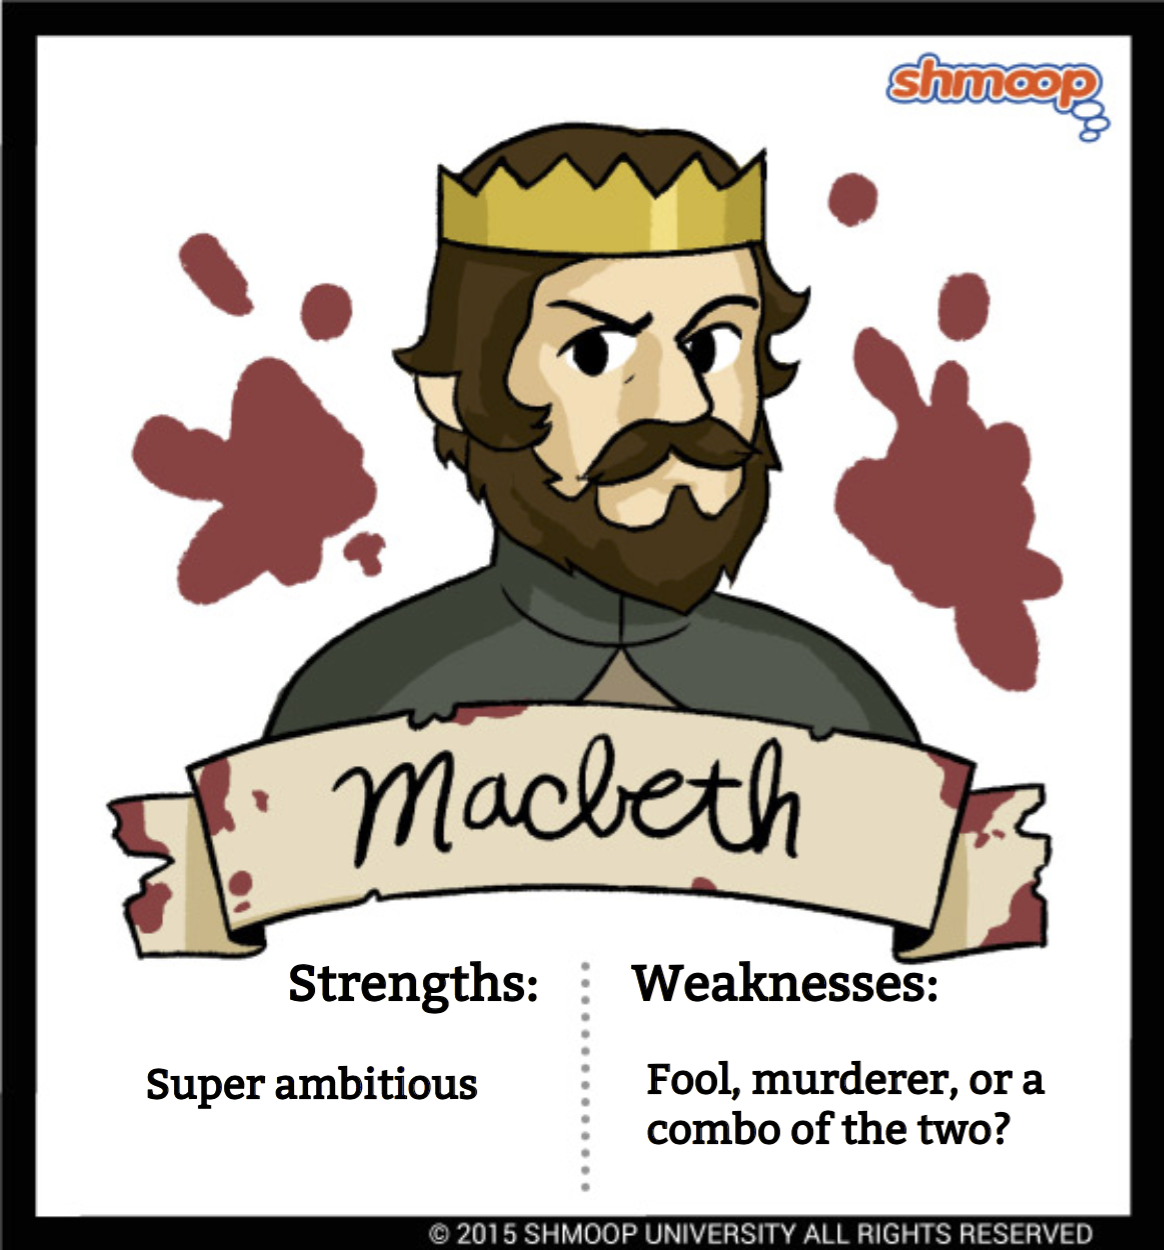 themes of macbeth The obvious theme of macbeth is betrayal betrayal, however, goes beyond macbeth's gruesome murder of the the king betrayal, however, goes beyond macbeth's gruesome murder of the the king betrayal in macbeth includes.